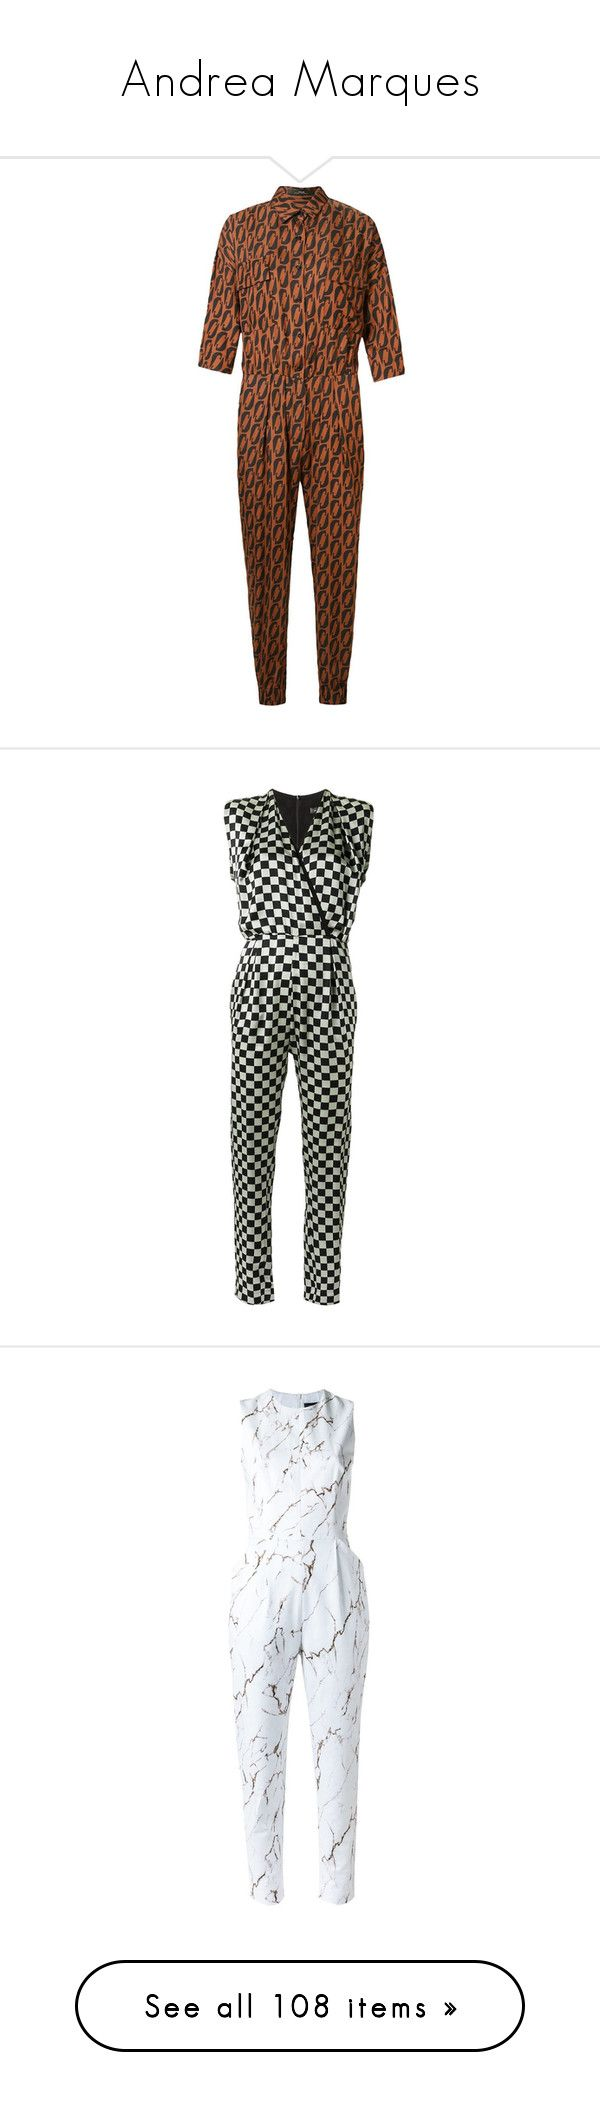 """""""Andrea Marques"""" by ahmady ❤ liked on Polyvore featuring jumpsuits, jump suit, andrea marques, brown jumpsuit, 3 4 sleeve jumpsuit, black, v neck jumpsuit, sleeveless jumpsuit, silk jumpsuit and white"""